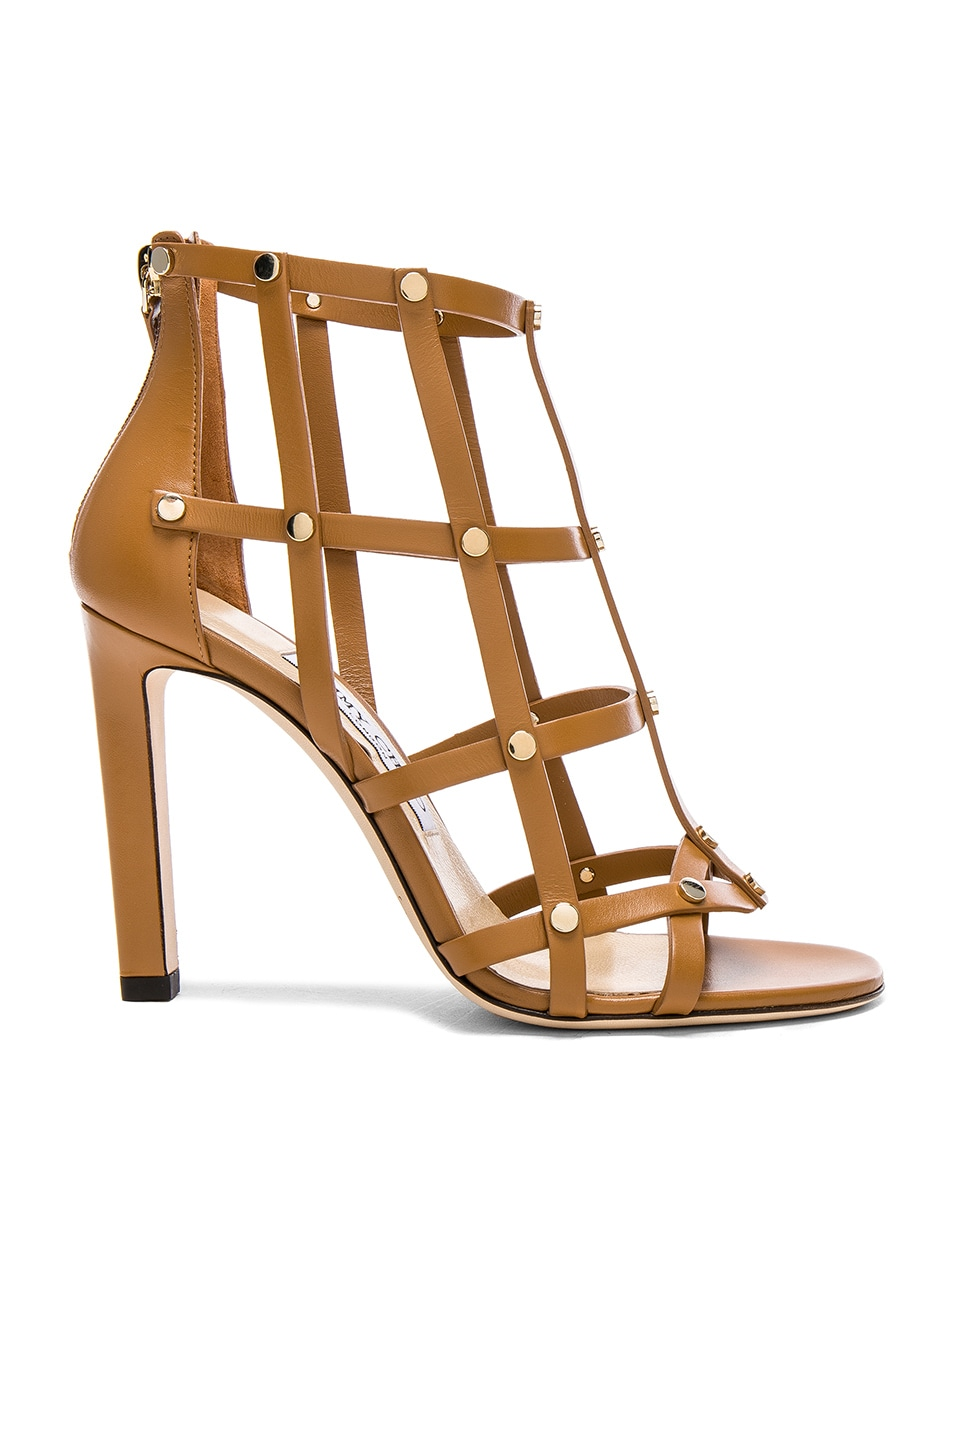 Image 1 of Jimmy Choo Leather Tina Sandals with Studs in Cuoio & Light Gold